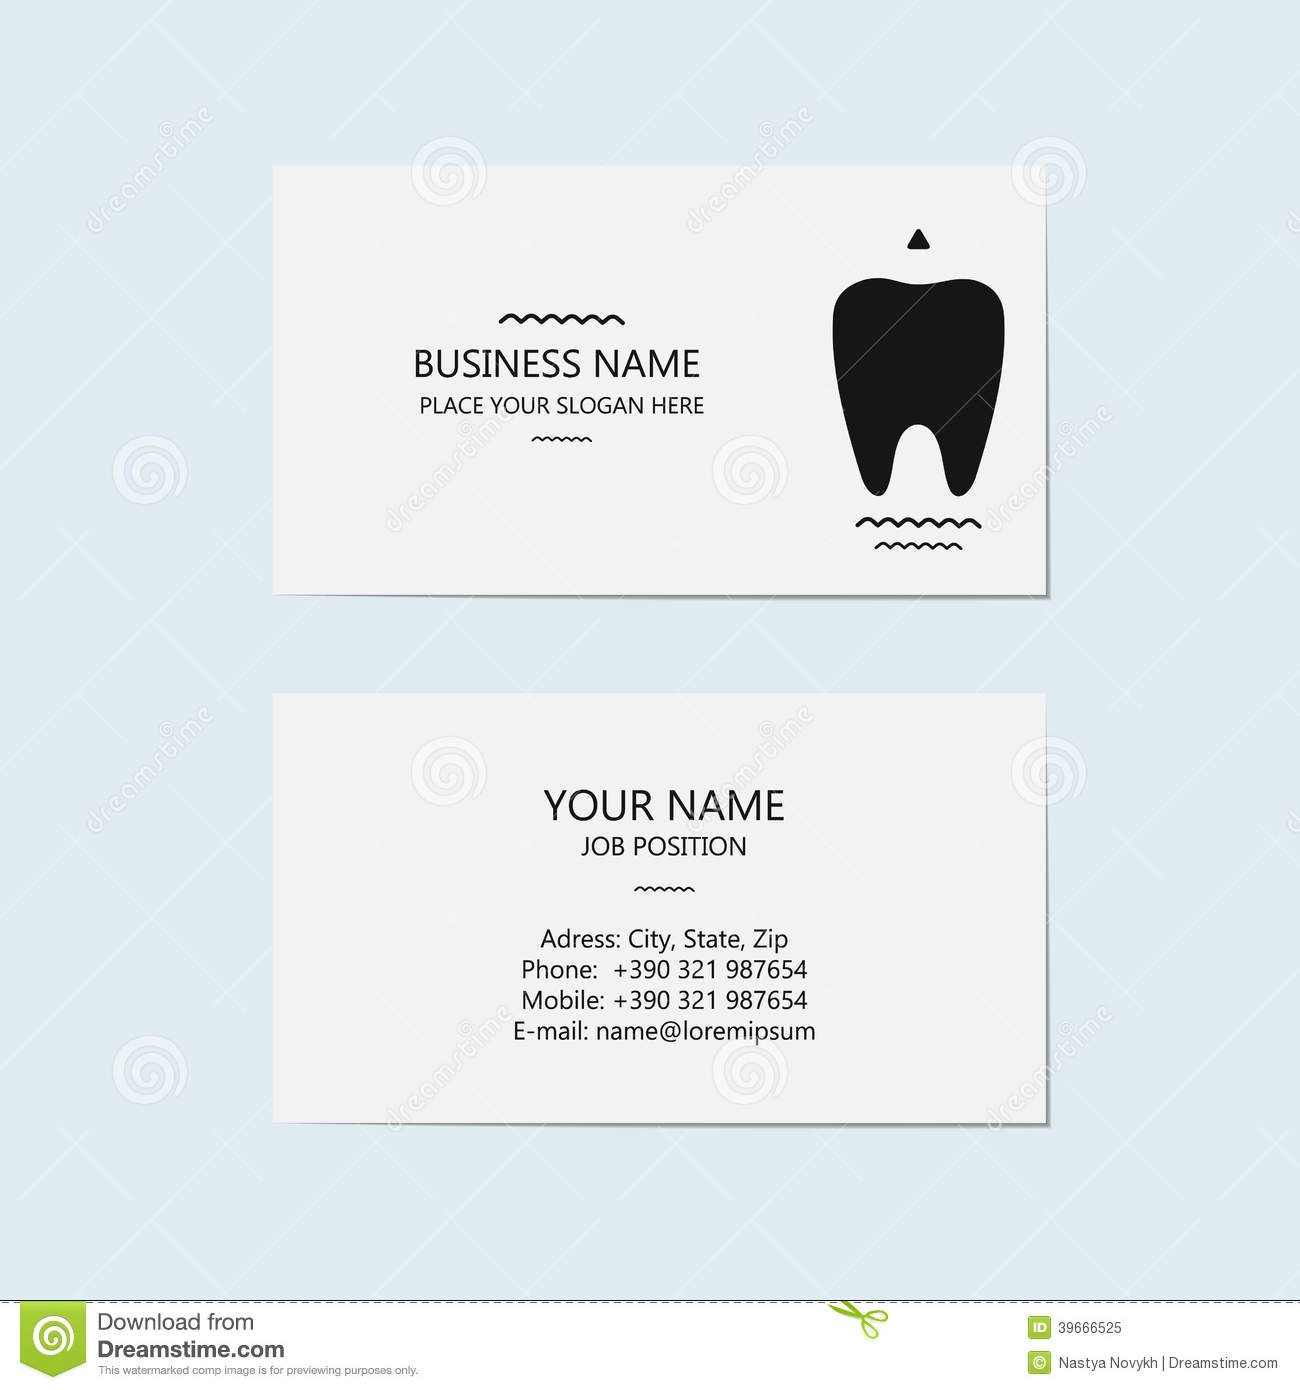 Business card stock options